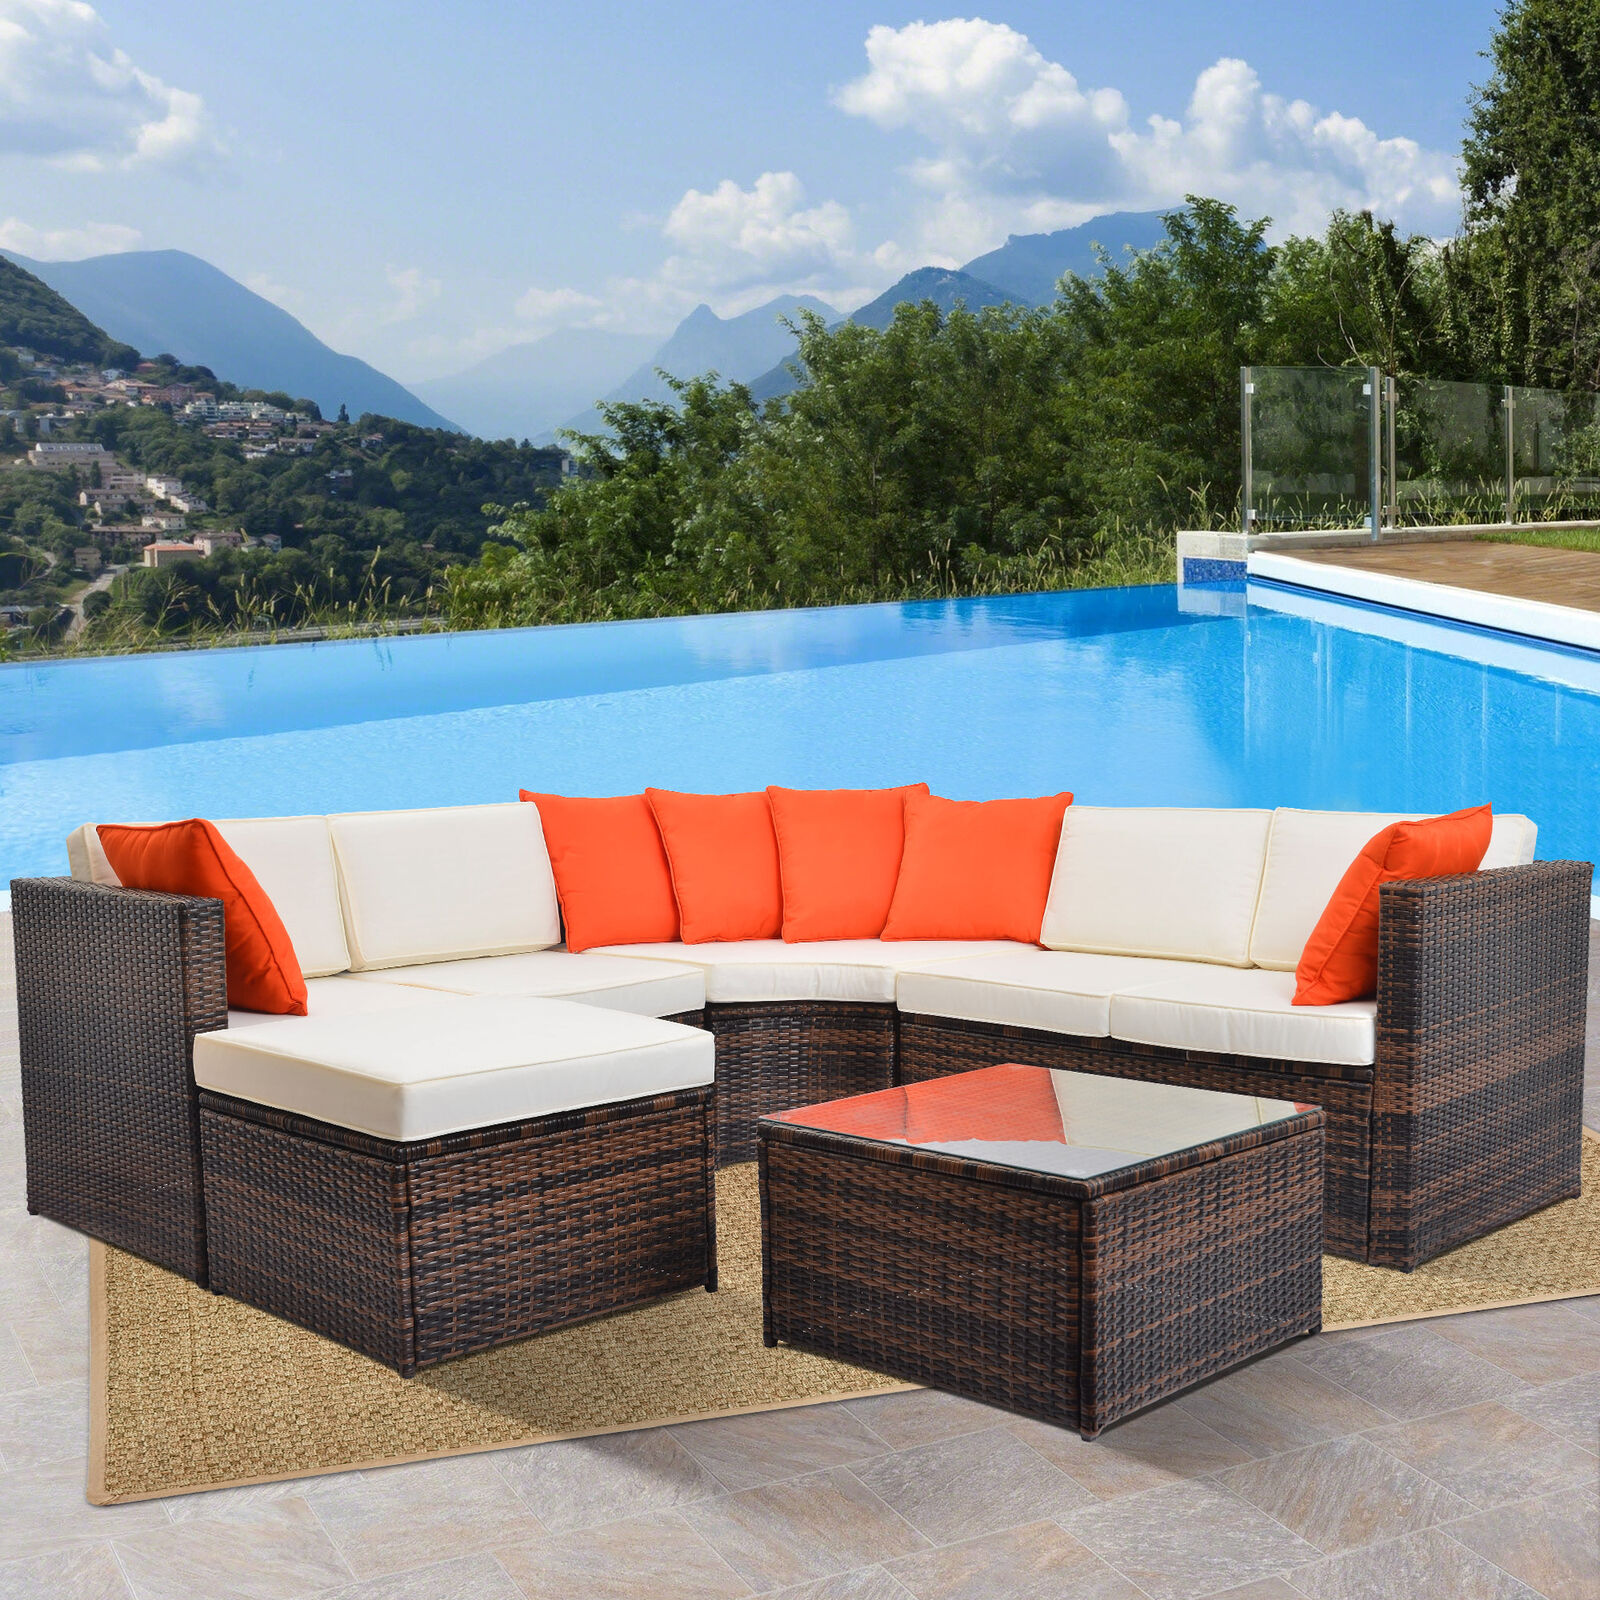 Patio Rattan Wicker Set Outdoor Furniture Sectional Sofa Dining